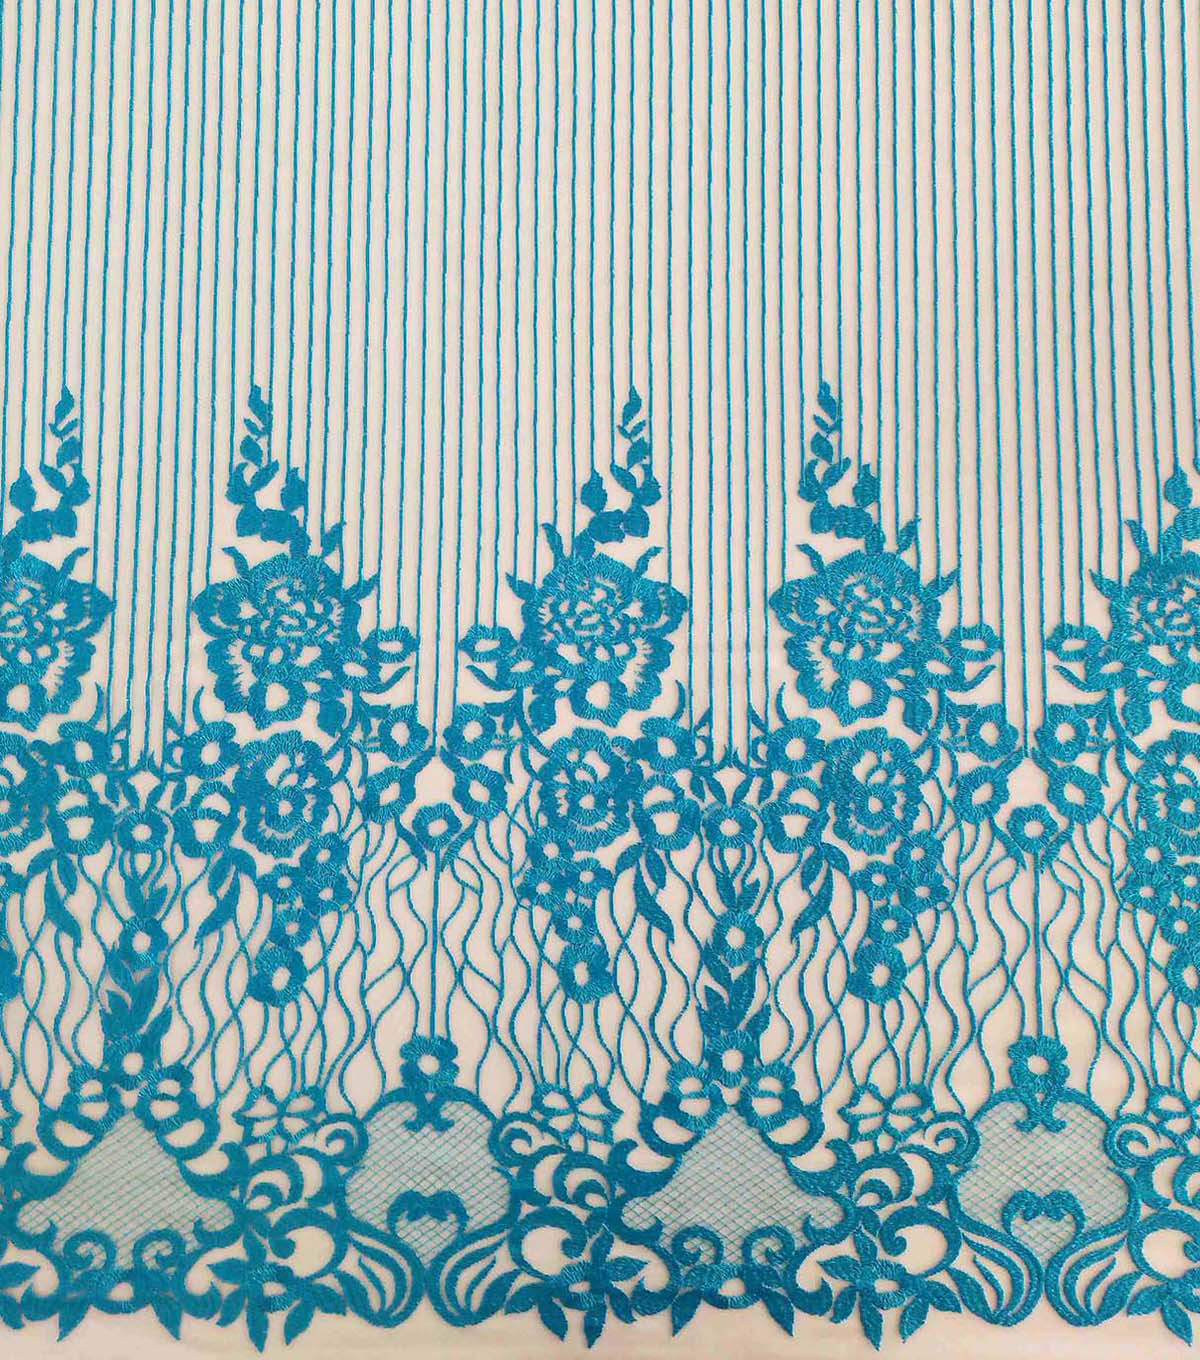 Casa Dahlia Embellished Fabric-Blue Linear Floral